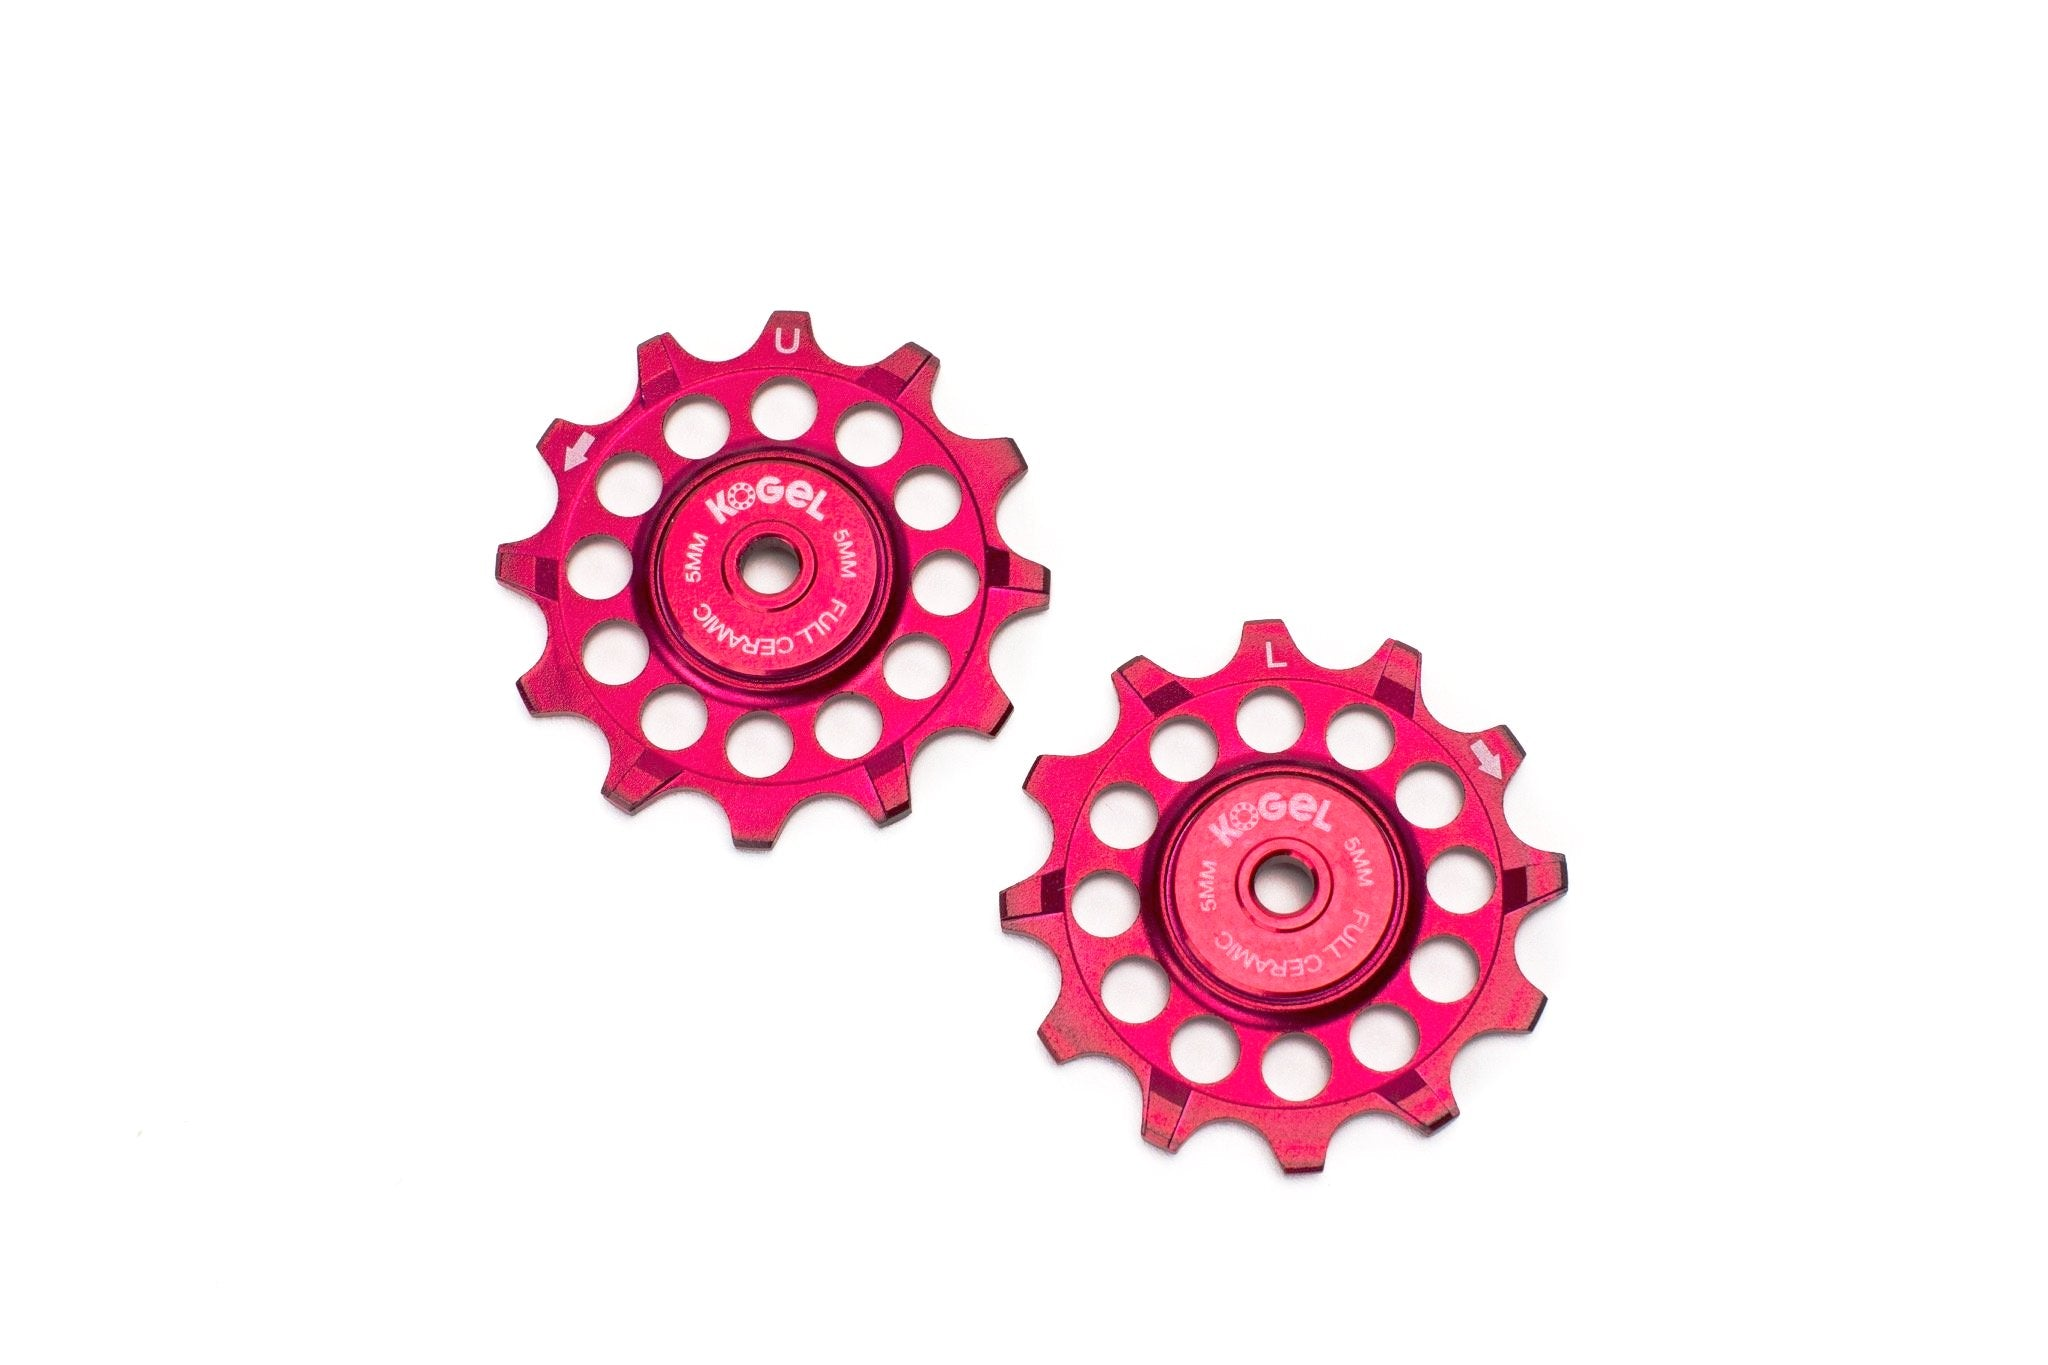 Fire Engine Red 12 tooth 'Not for Instagram' pulleys for Sram and Shimano ROAD